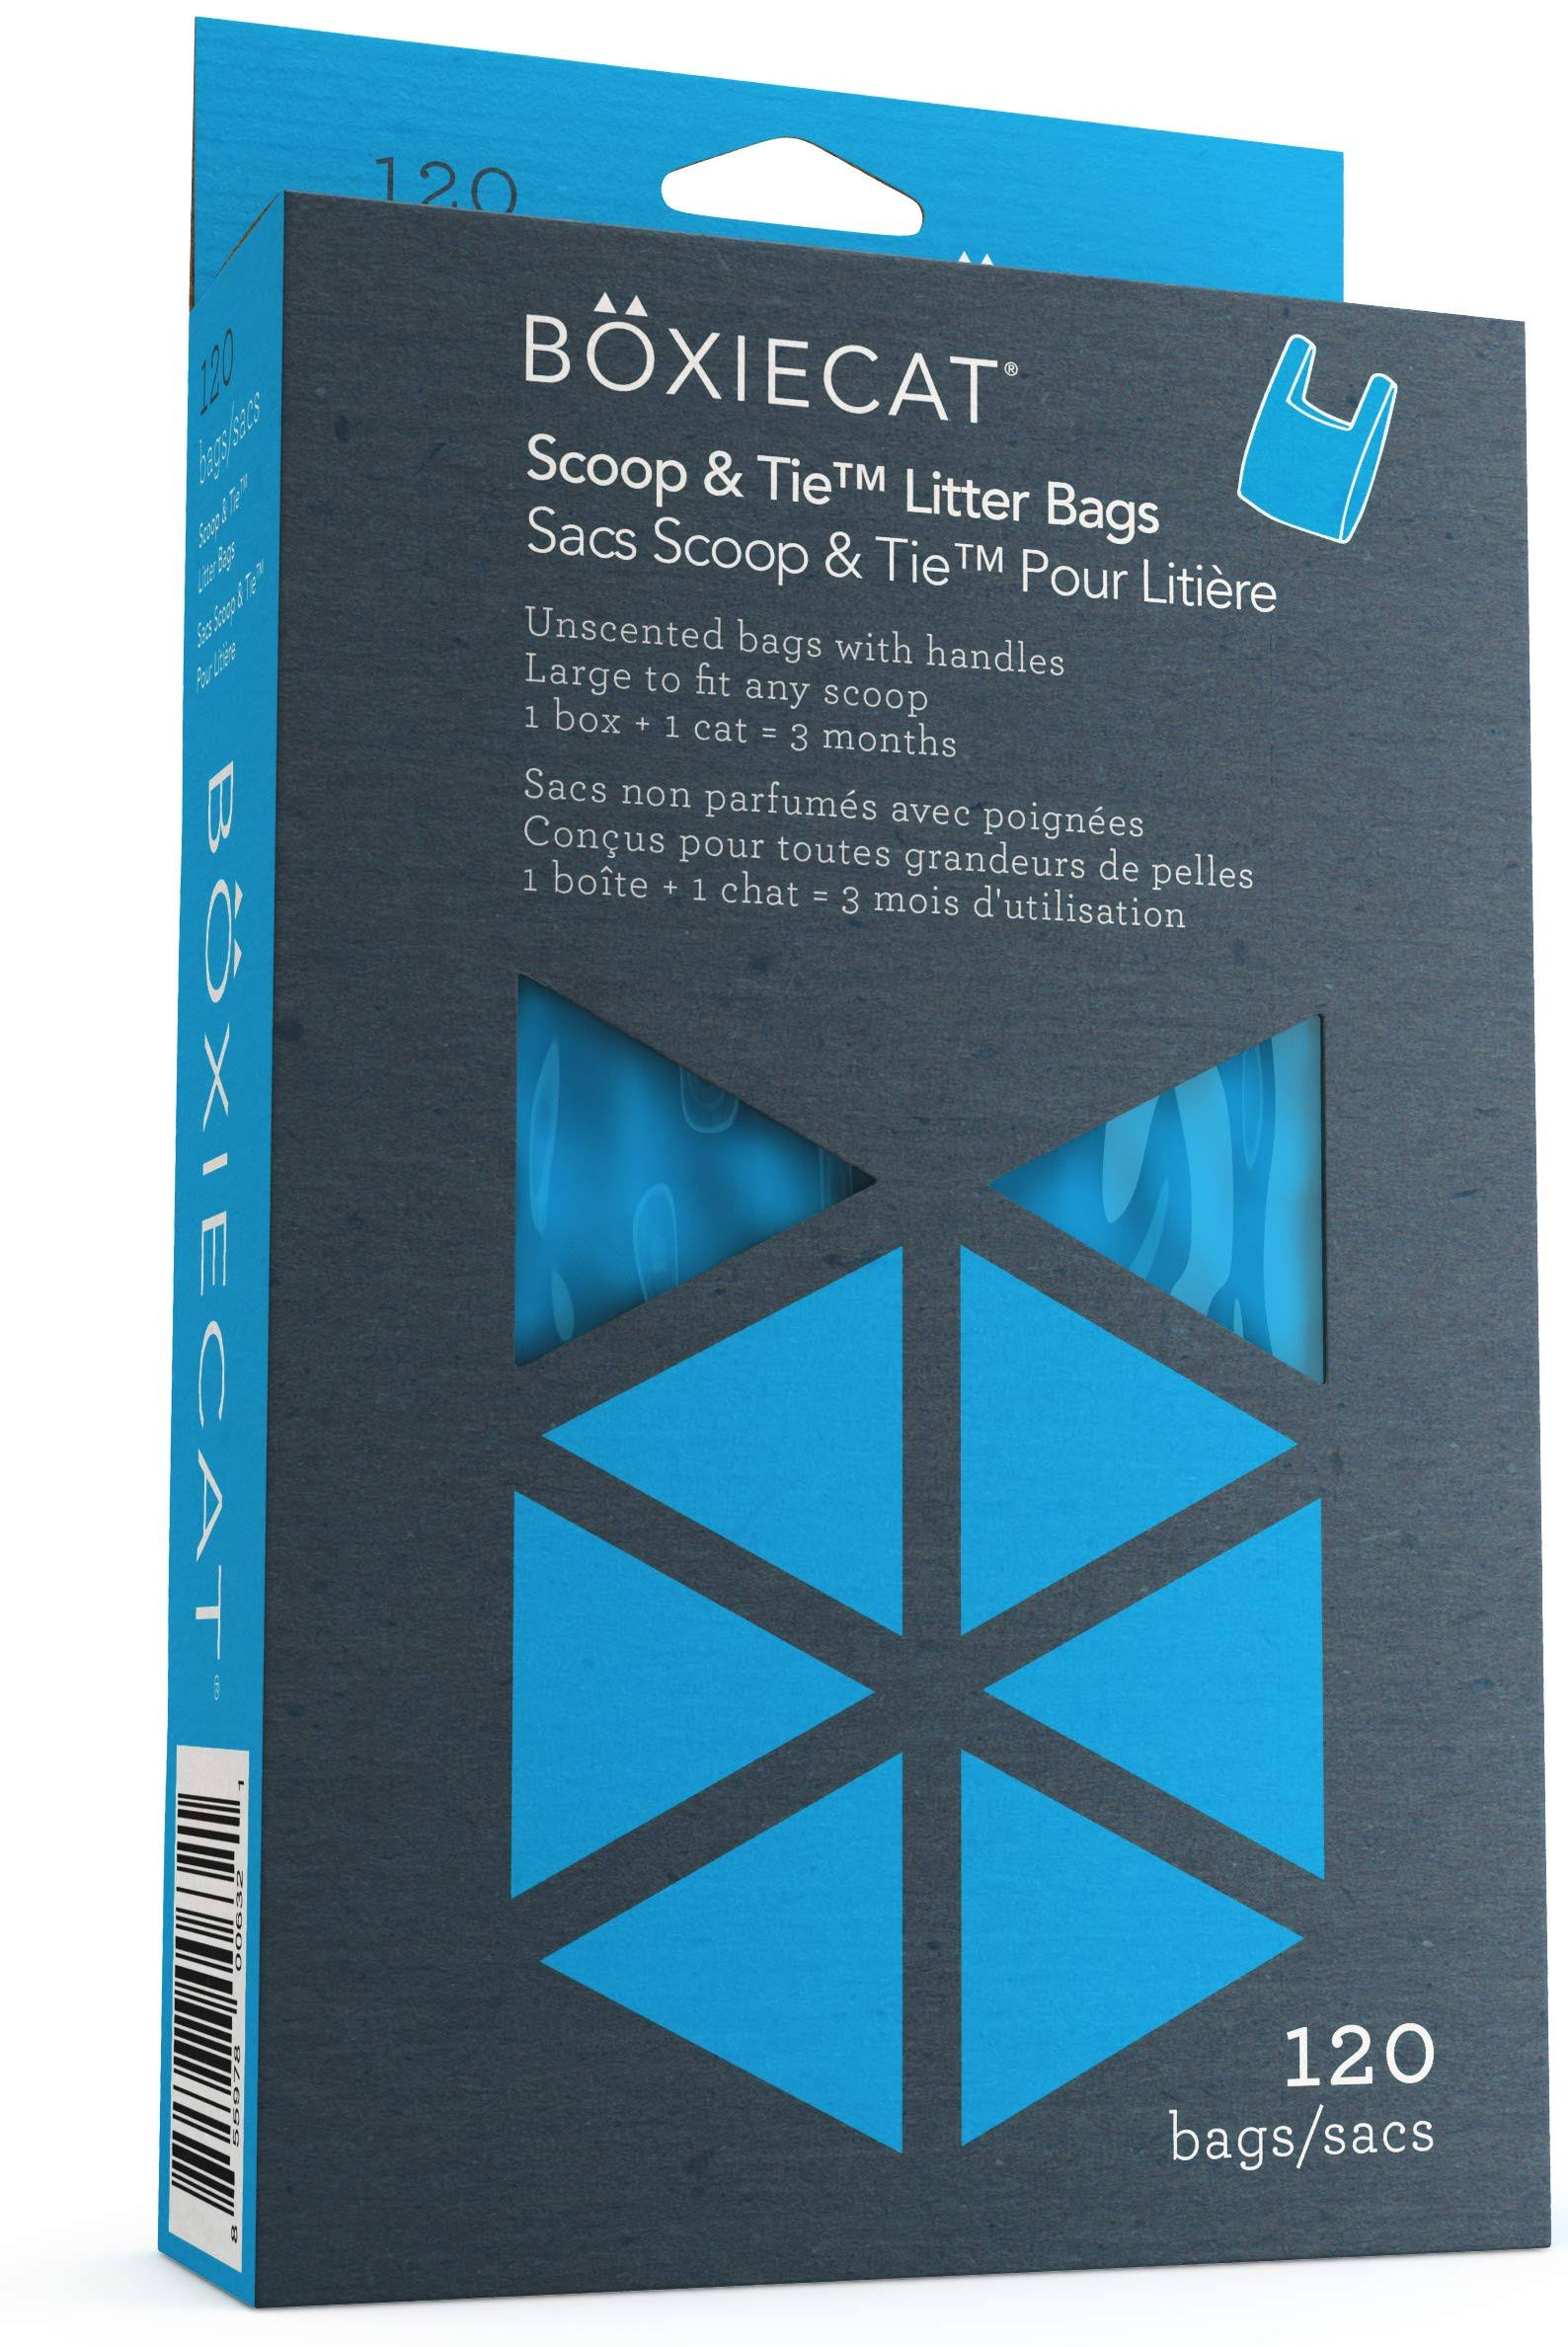 Boxiecat Scoop & Tie Litter Bags, 120 Count